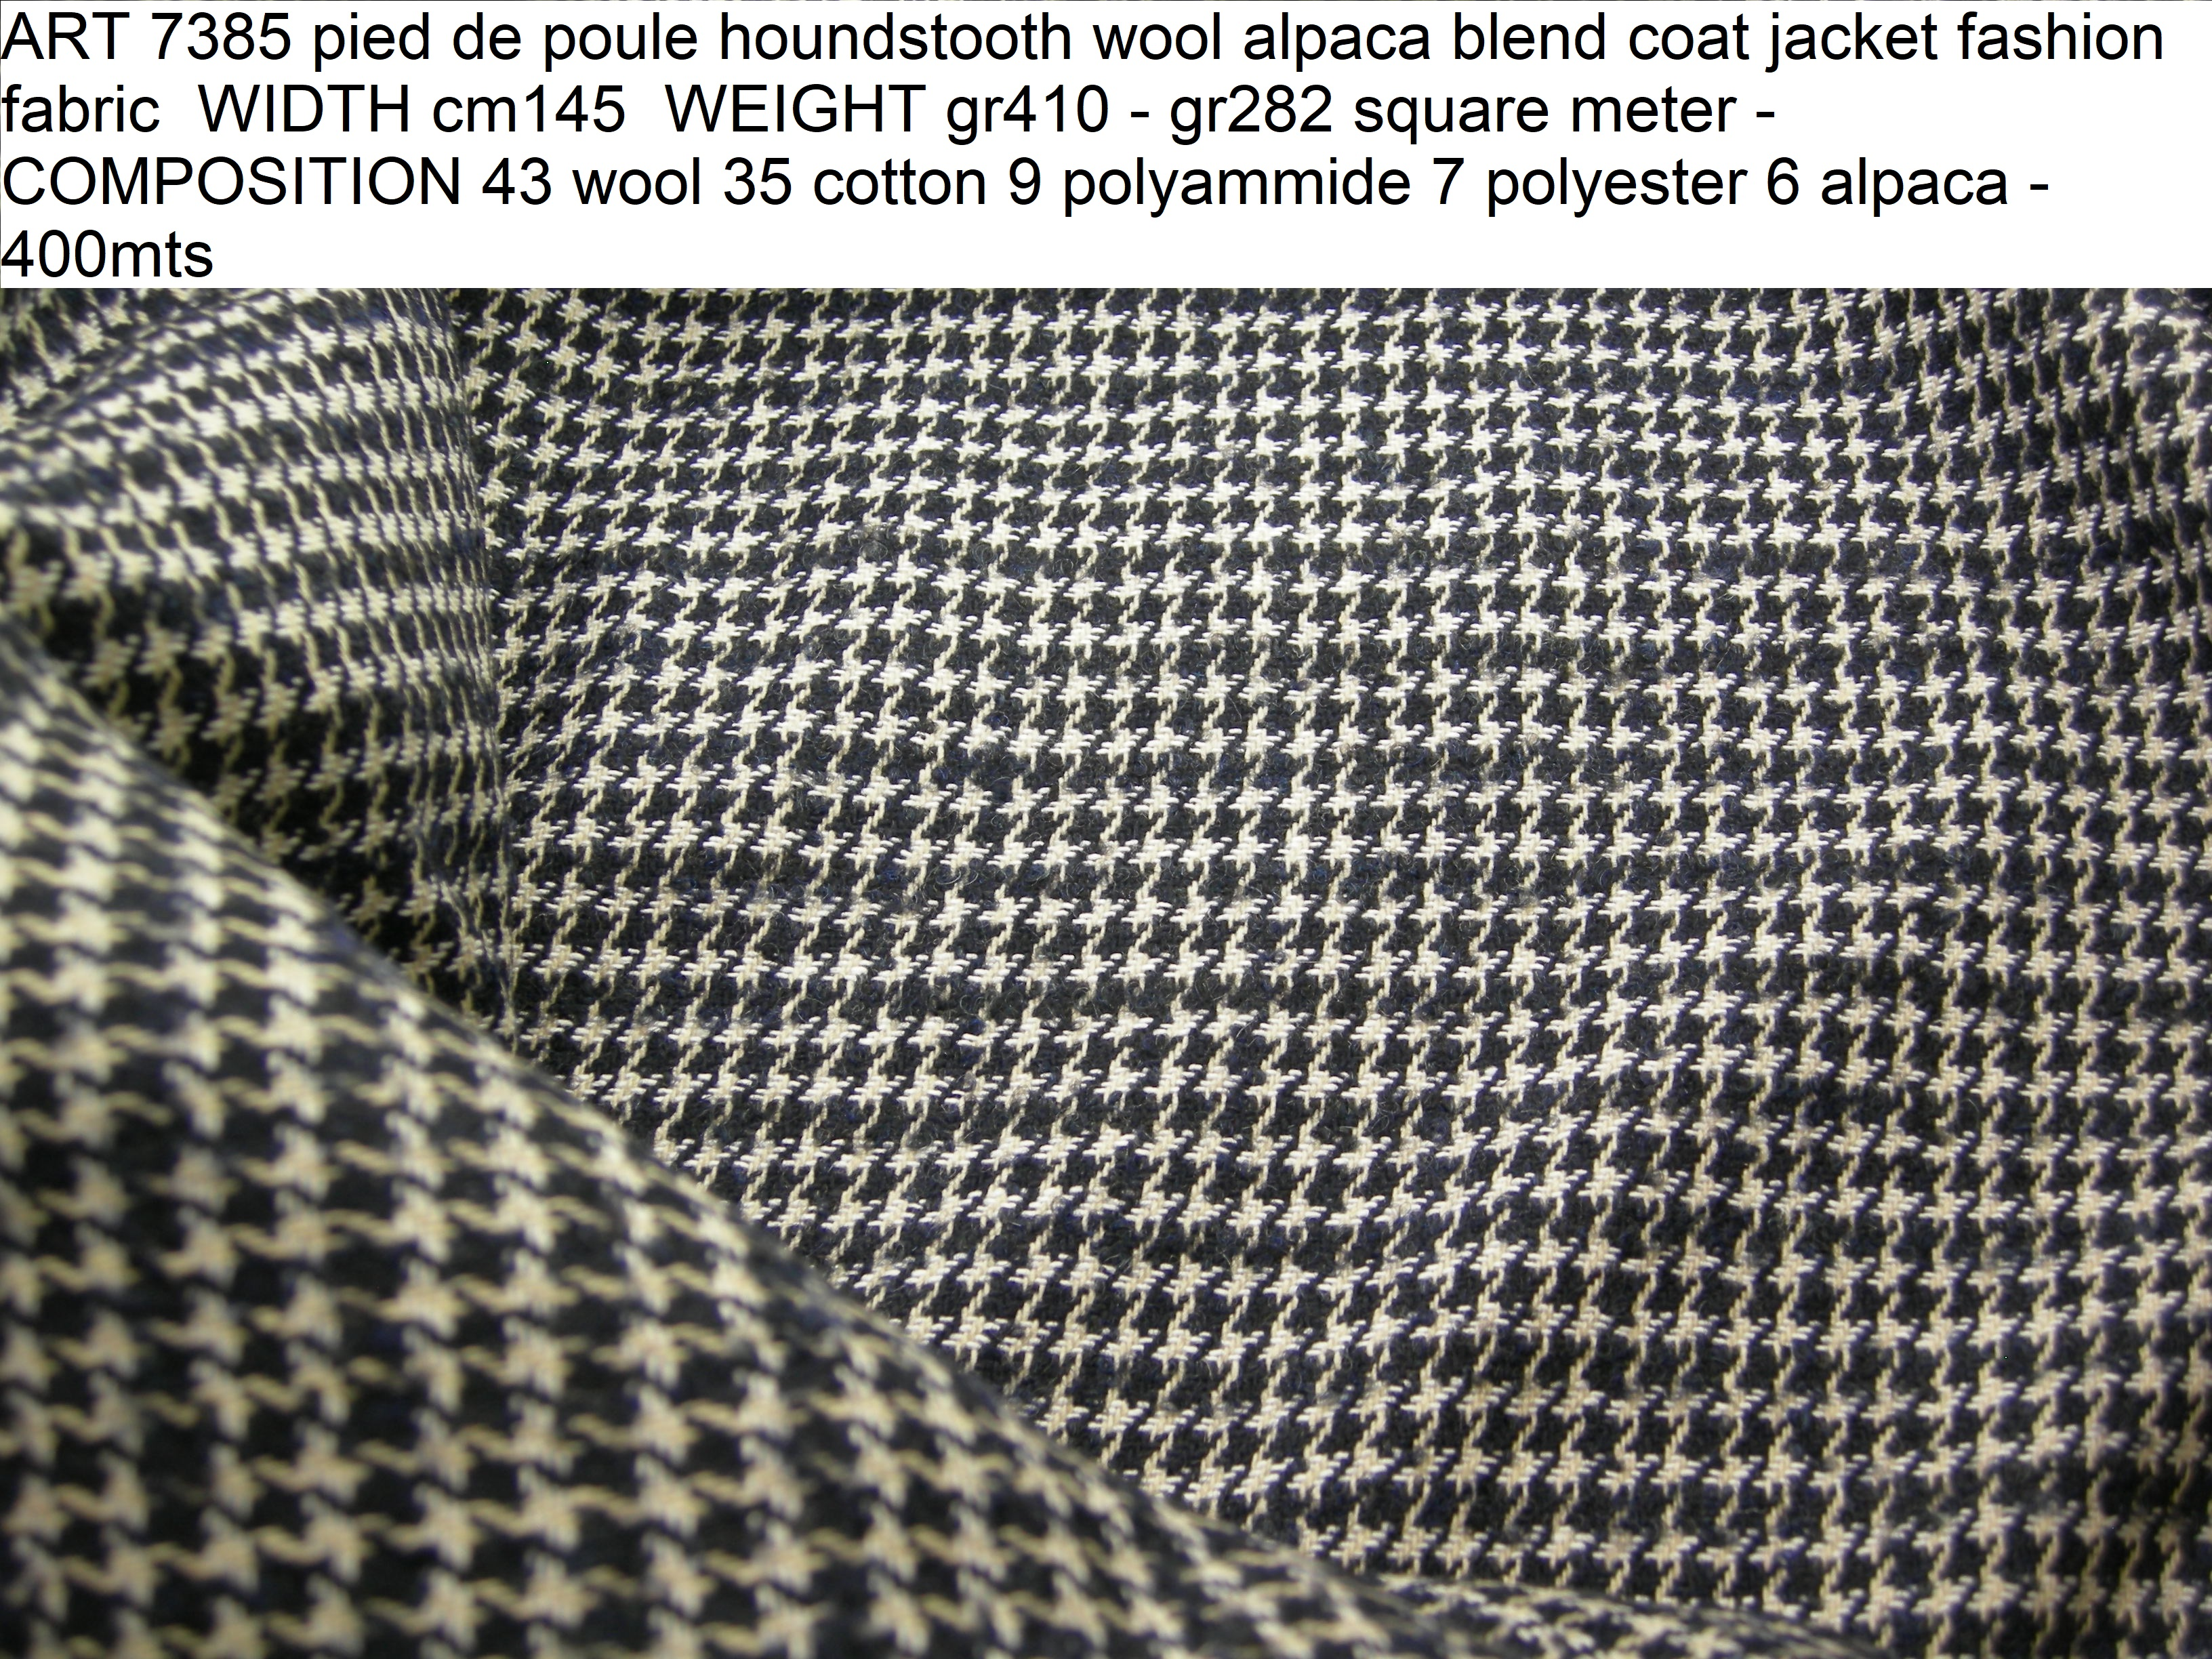 ART 7385 pied de poule houndstooth wool alpaca blend coat jacket fashion fabric WIDTH cm145 WEIGHT gr410 - gr282 square meter - COMPOSITION 43 wool 35 cotton 9 polyammide 7 polyester 6 alpaca - 400mts